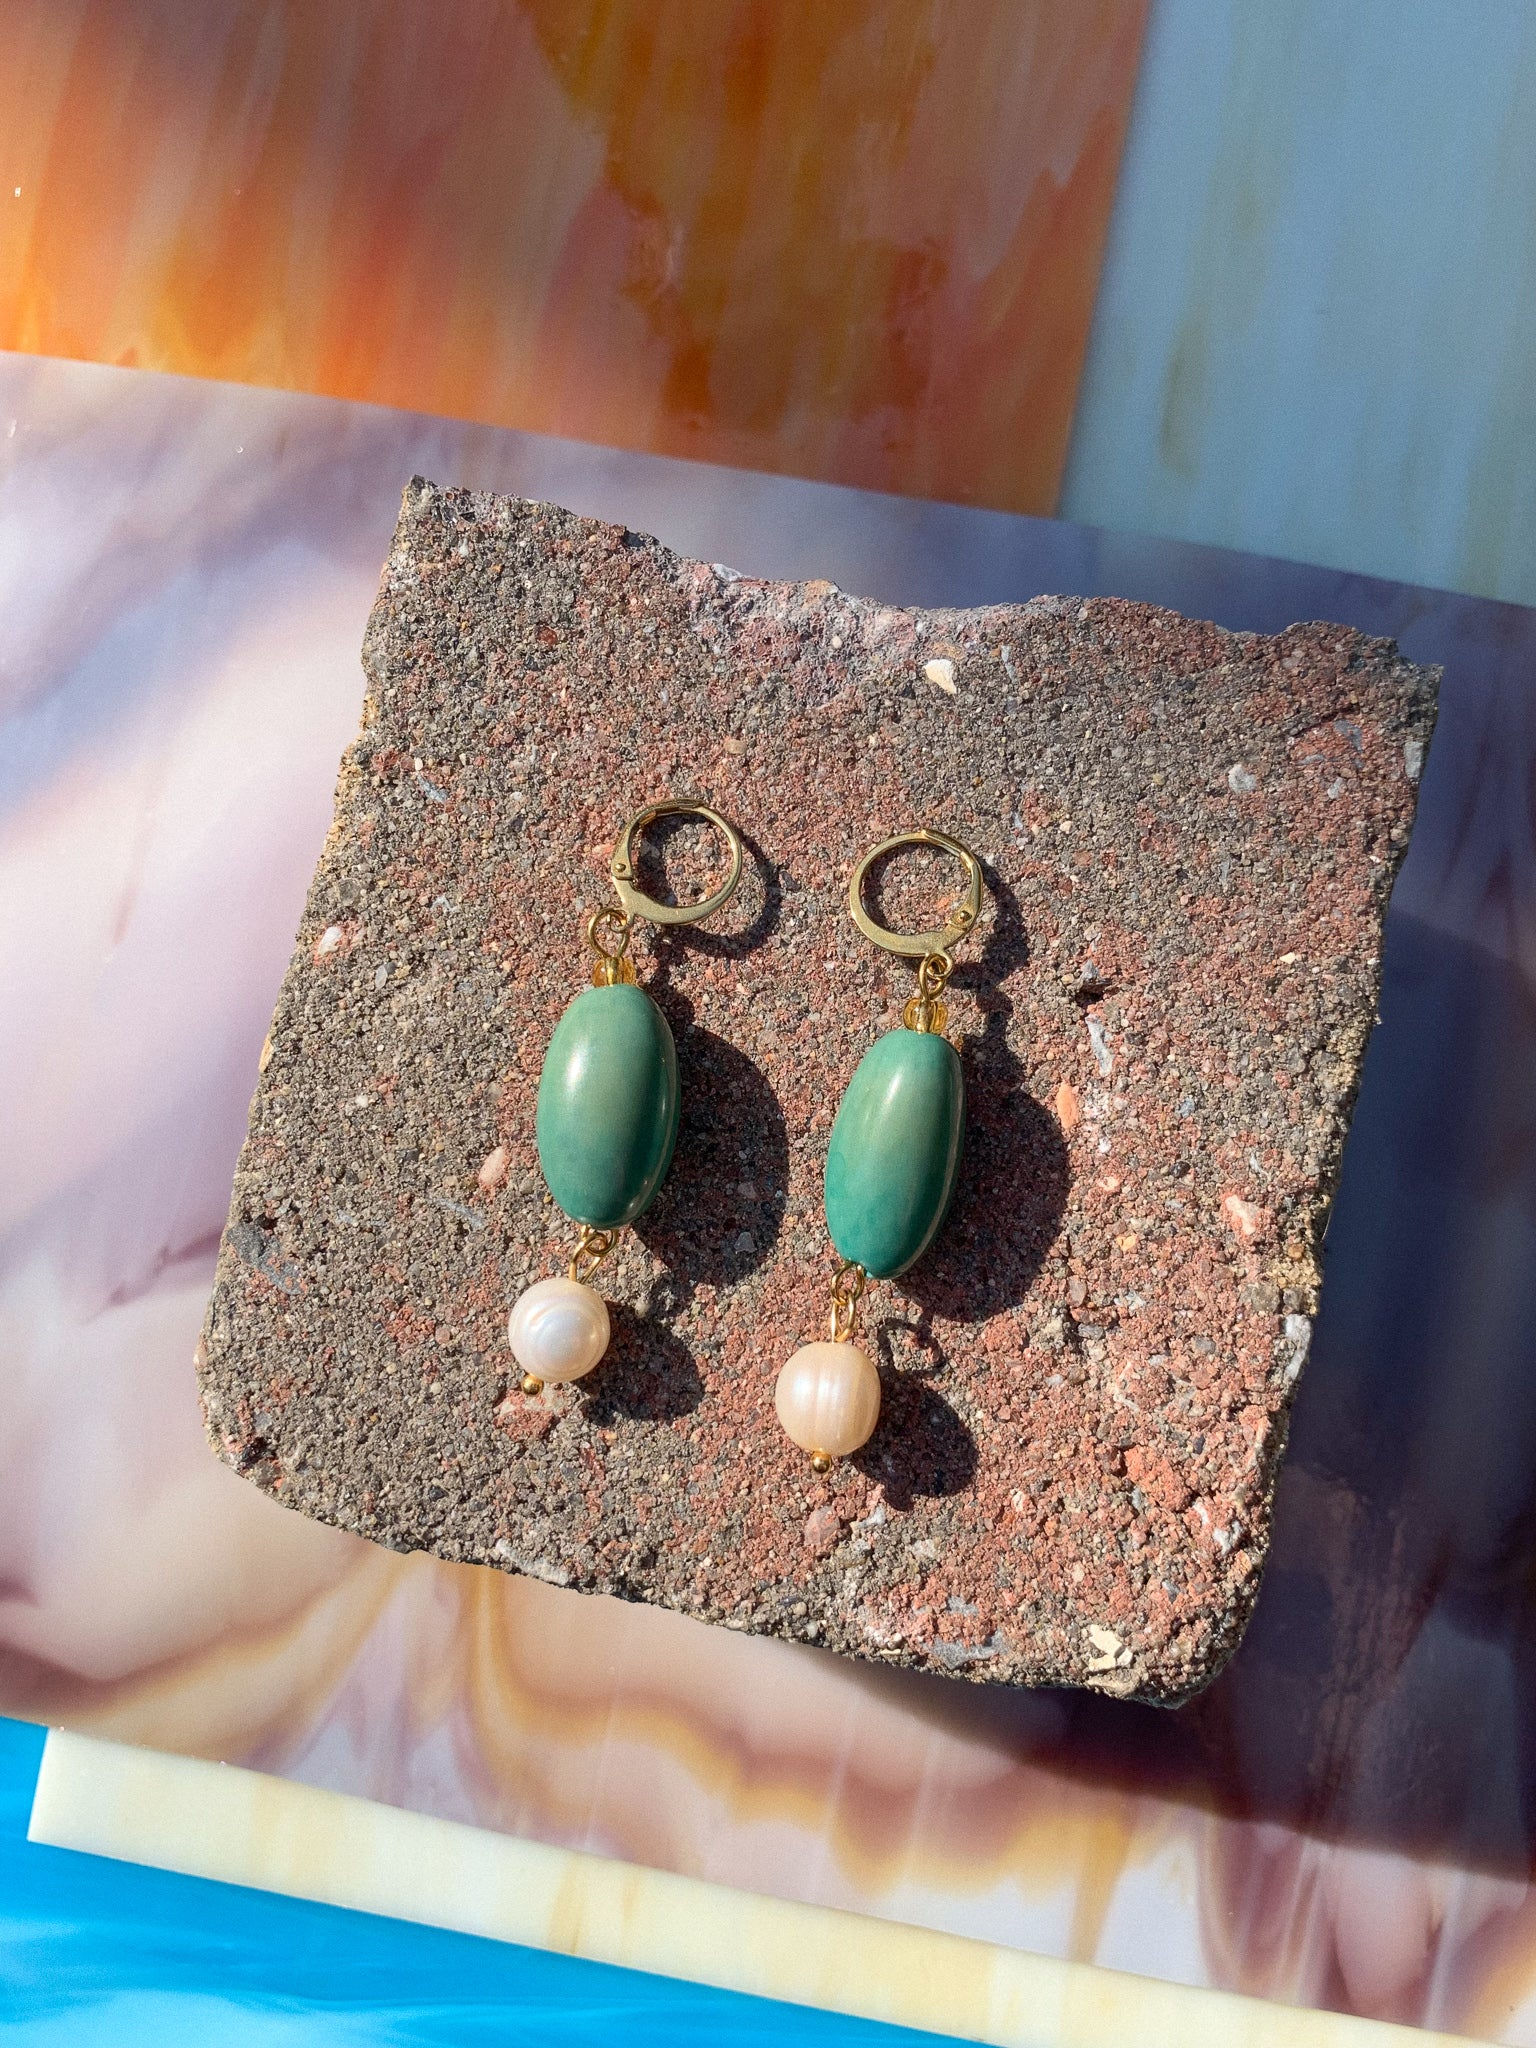 Handmade earrings featuring aqua vísola seeds